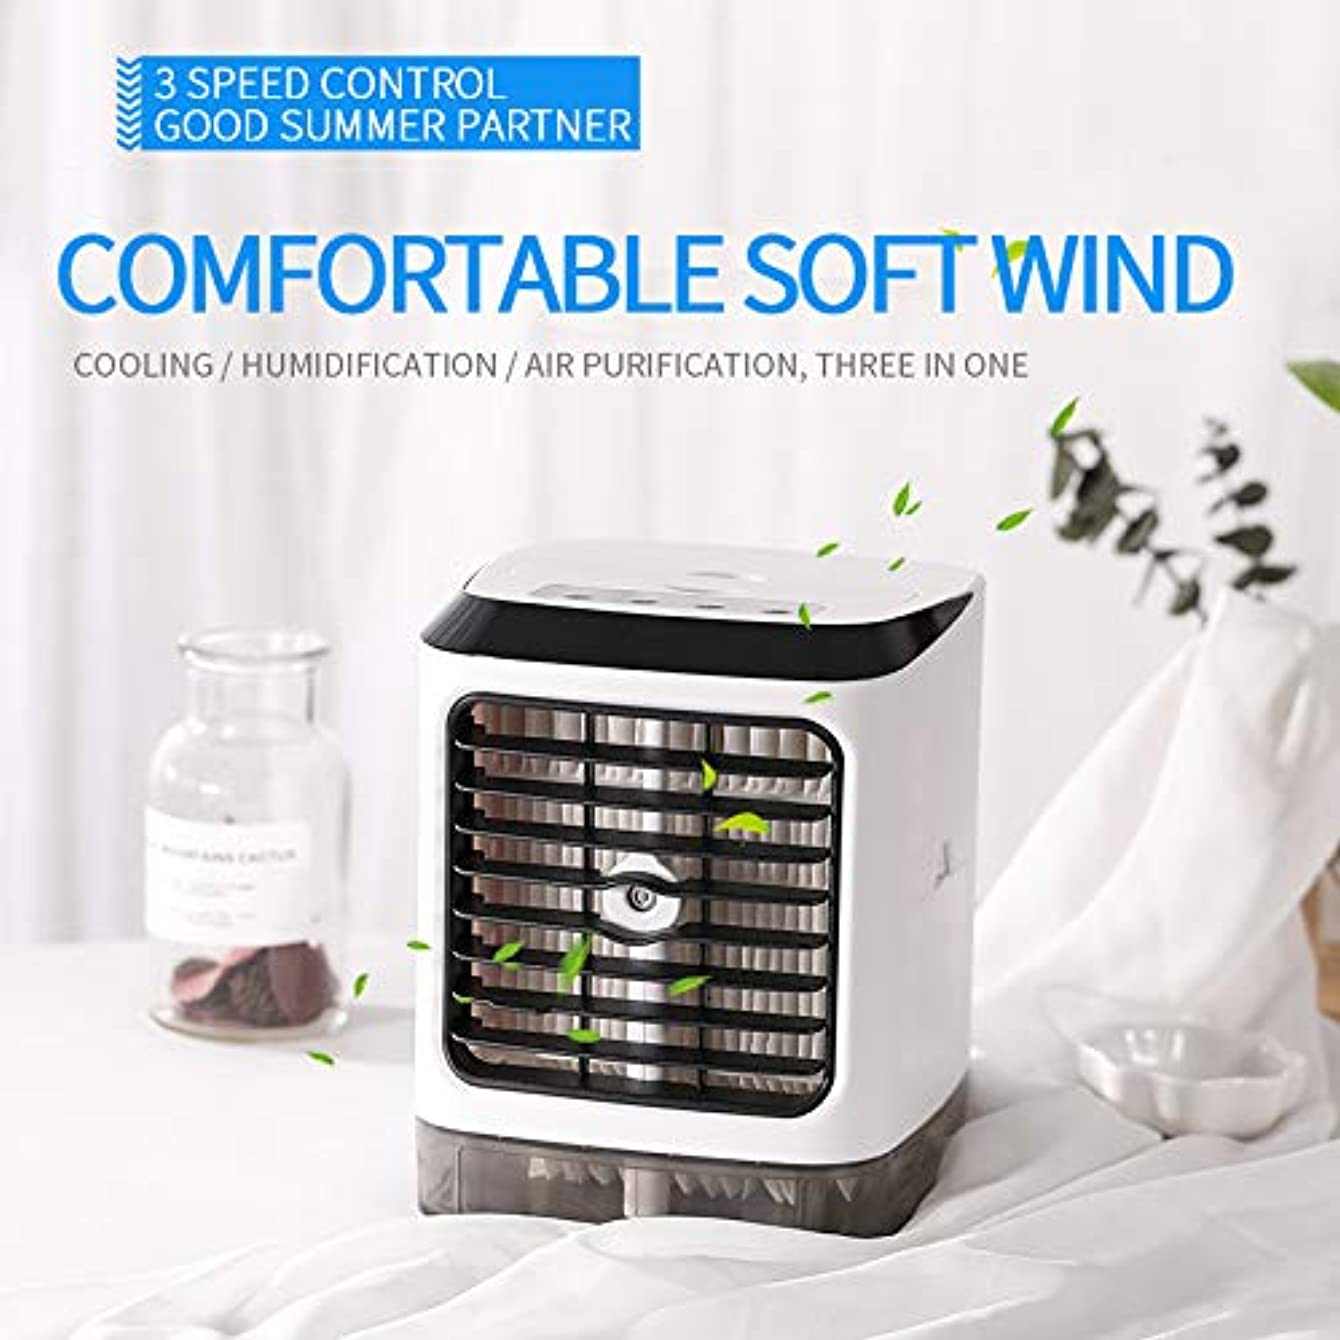 Space Cooler, STLOVE Personal Air Cooler Air Purifier Humidifier 3 in 1, 3 Speeds Desktop Space Air Conditioner with Handle for Office, Bedroom and Livingroom